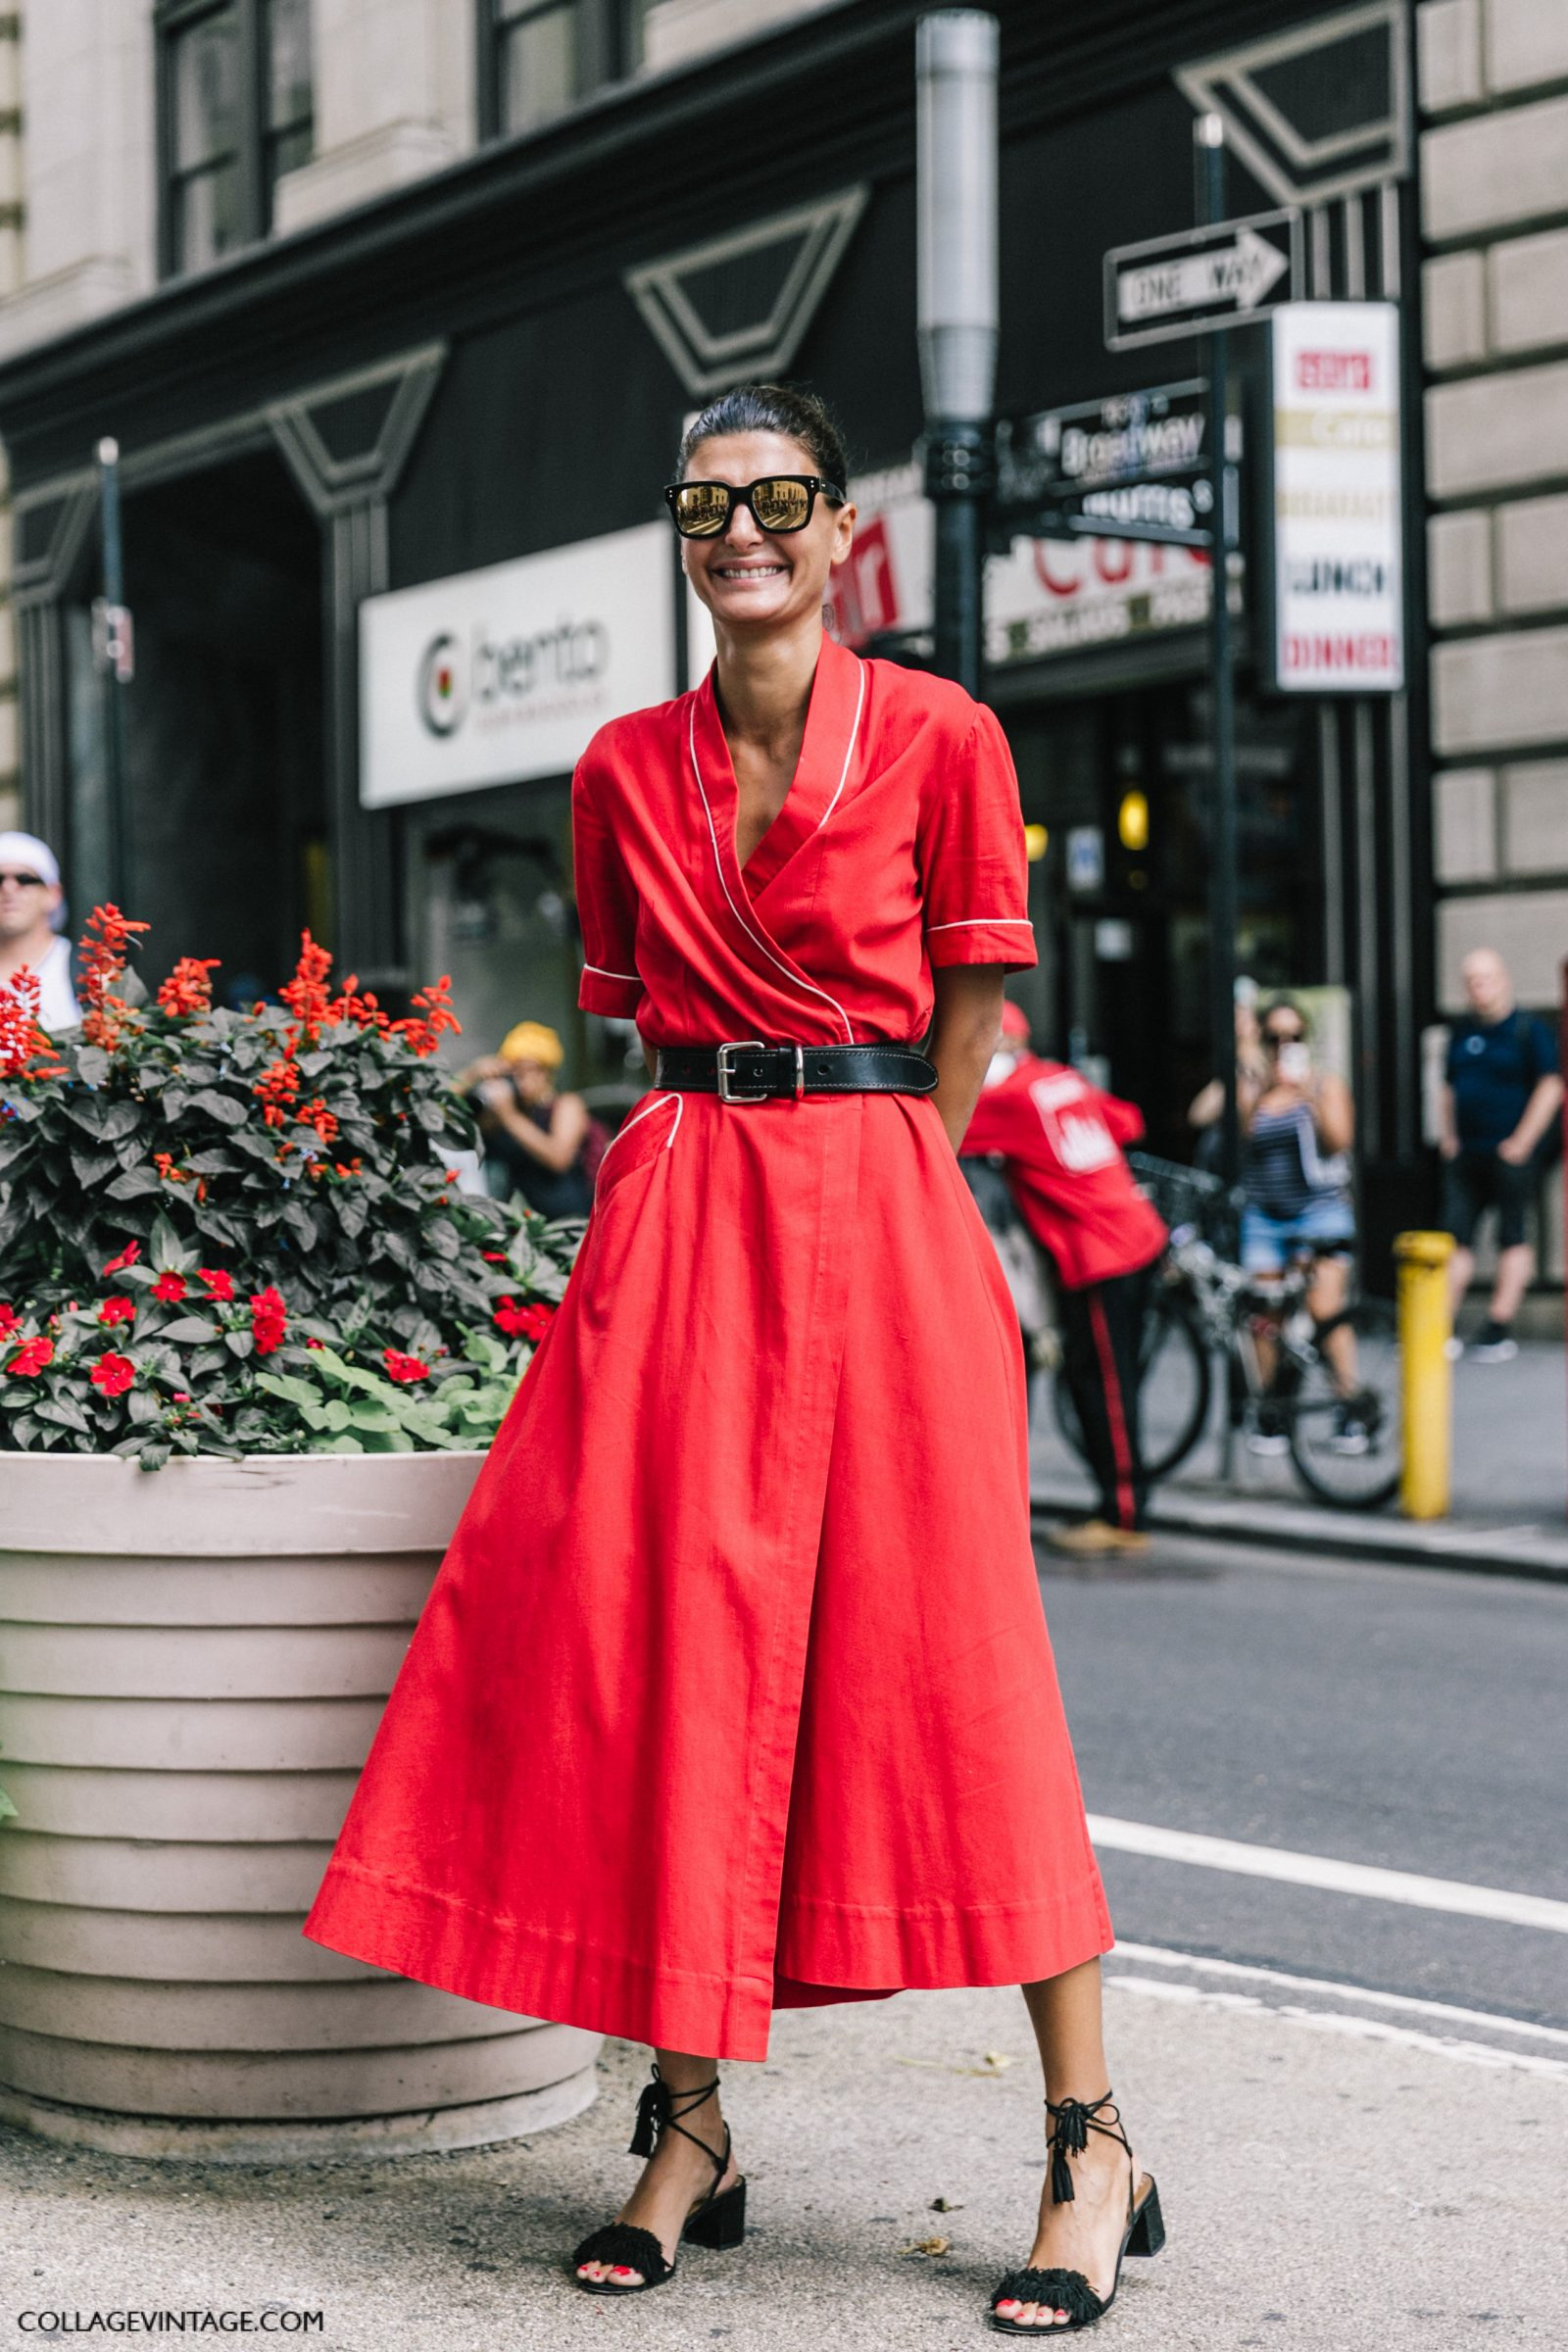 nyfw-new_york_fashion_week_ss17-street_style-outfits-collage_vintage-vintage-victoria_beckham-33